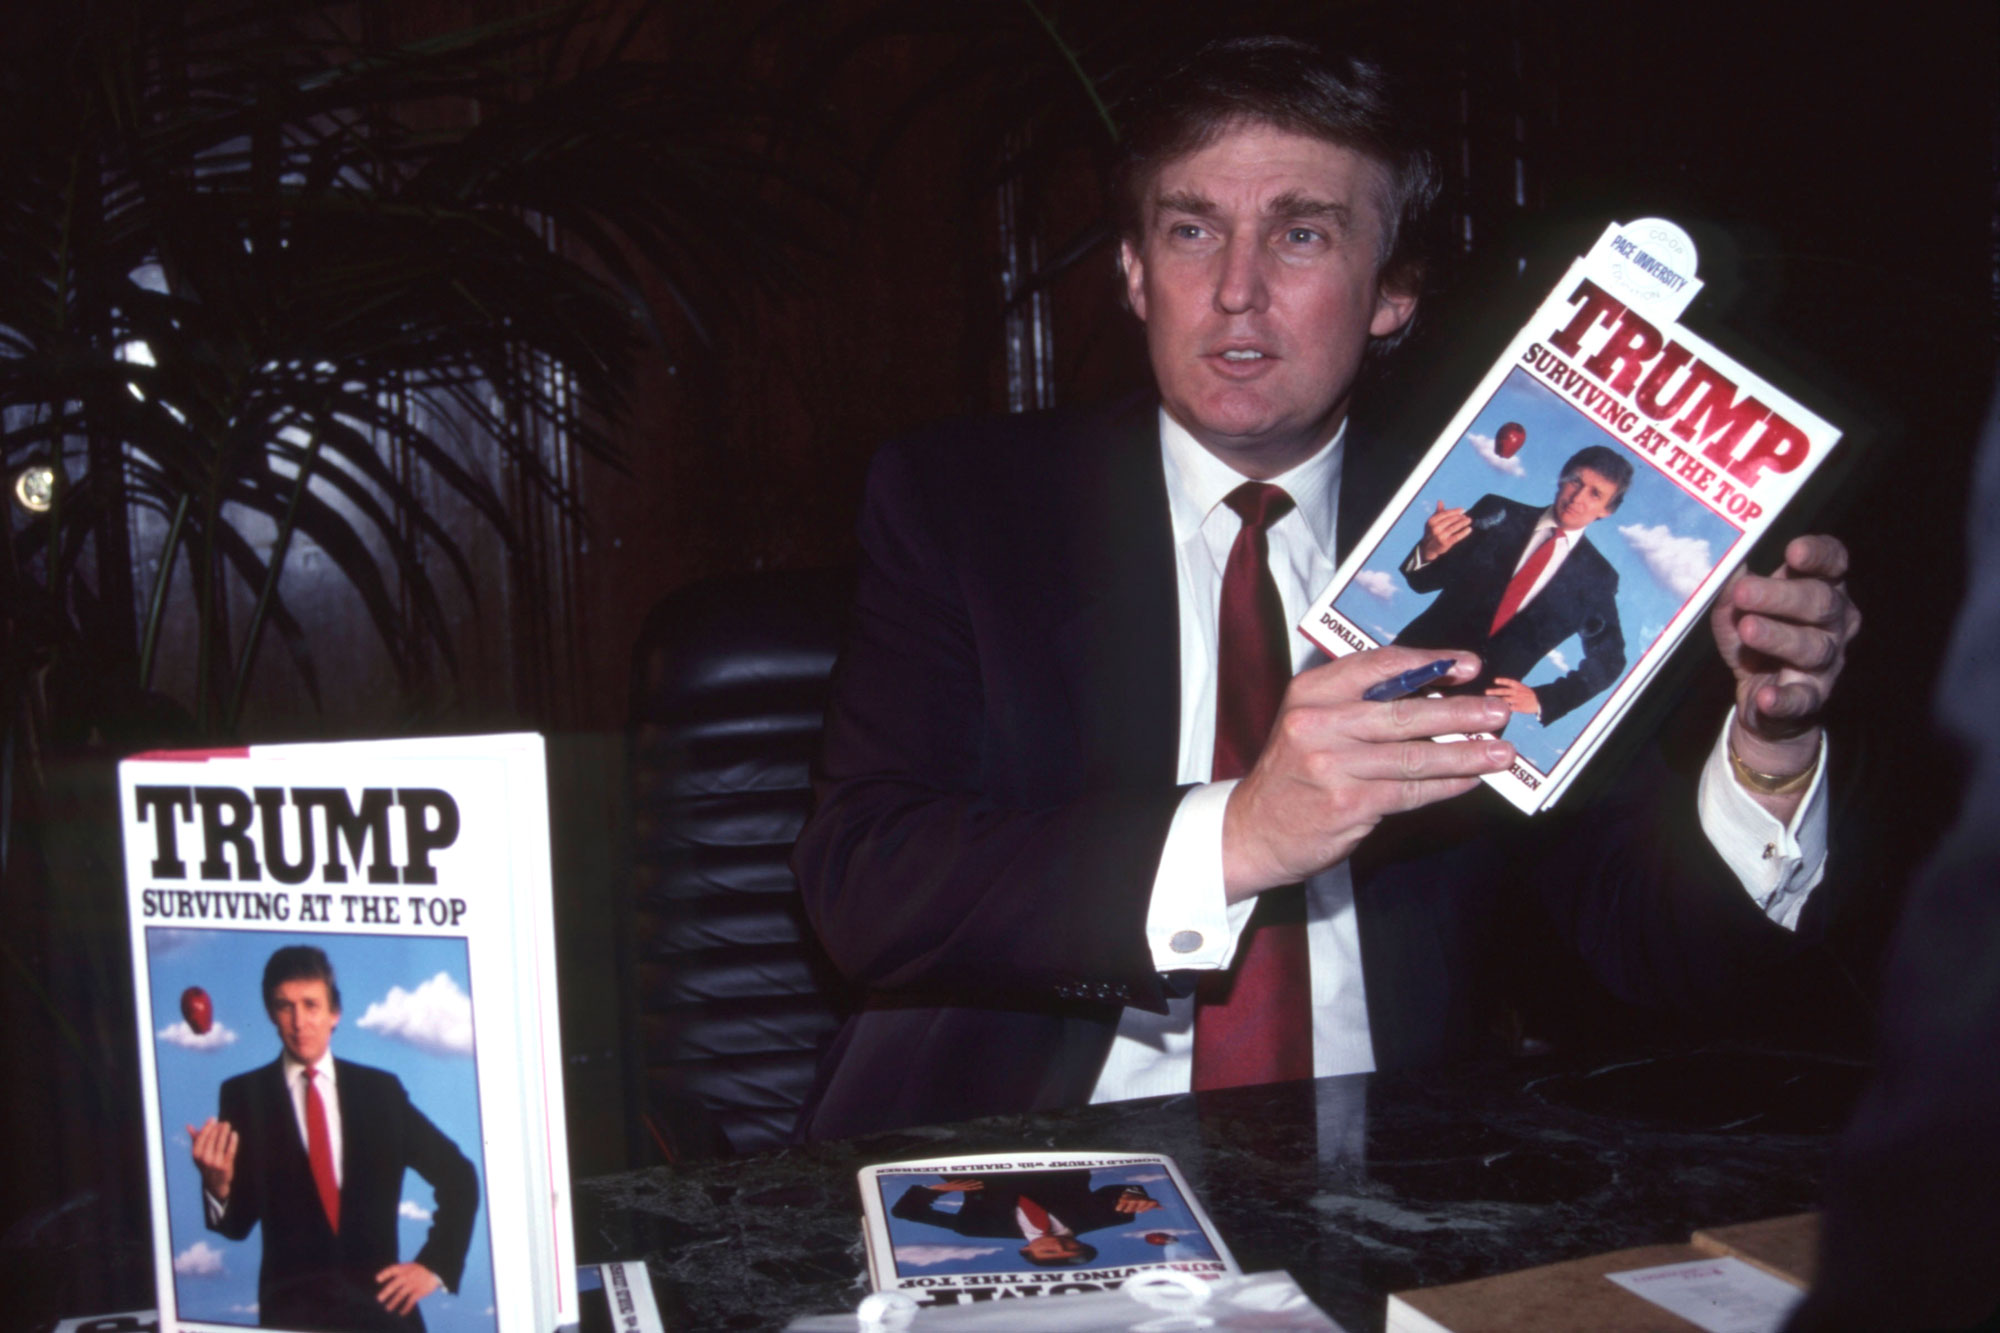 "NEW YORK - OCTOBER 1990: Donald Trump at signing for his book ""Trump: Surviving at the Top"" circa October 1990 in New York City. (Photo by Sonia Moskowitz/Getty Images)"